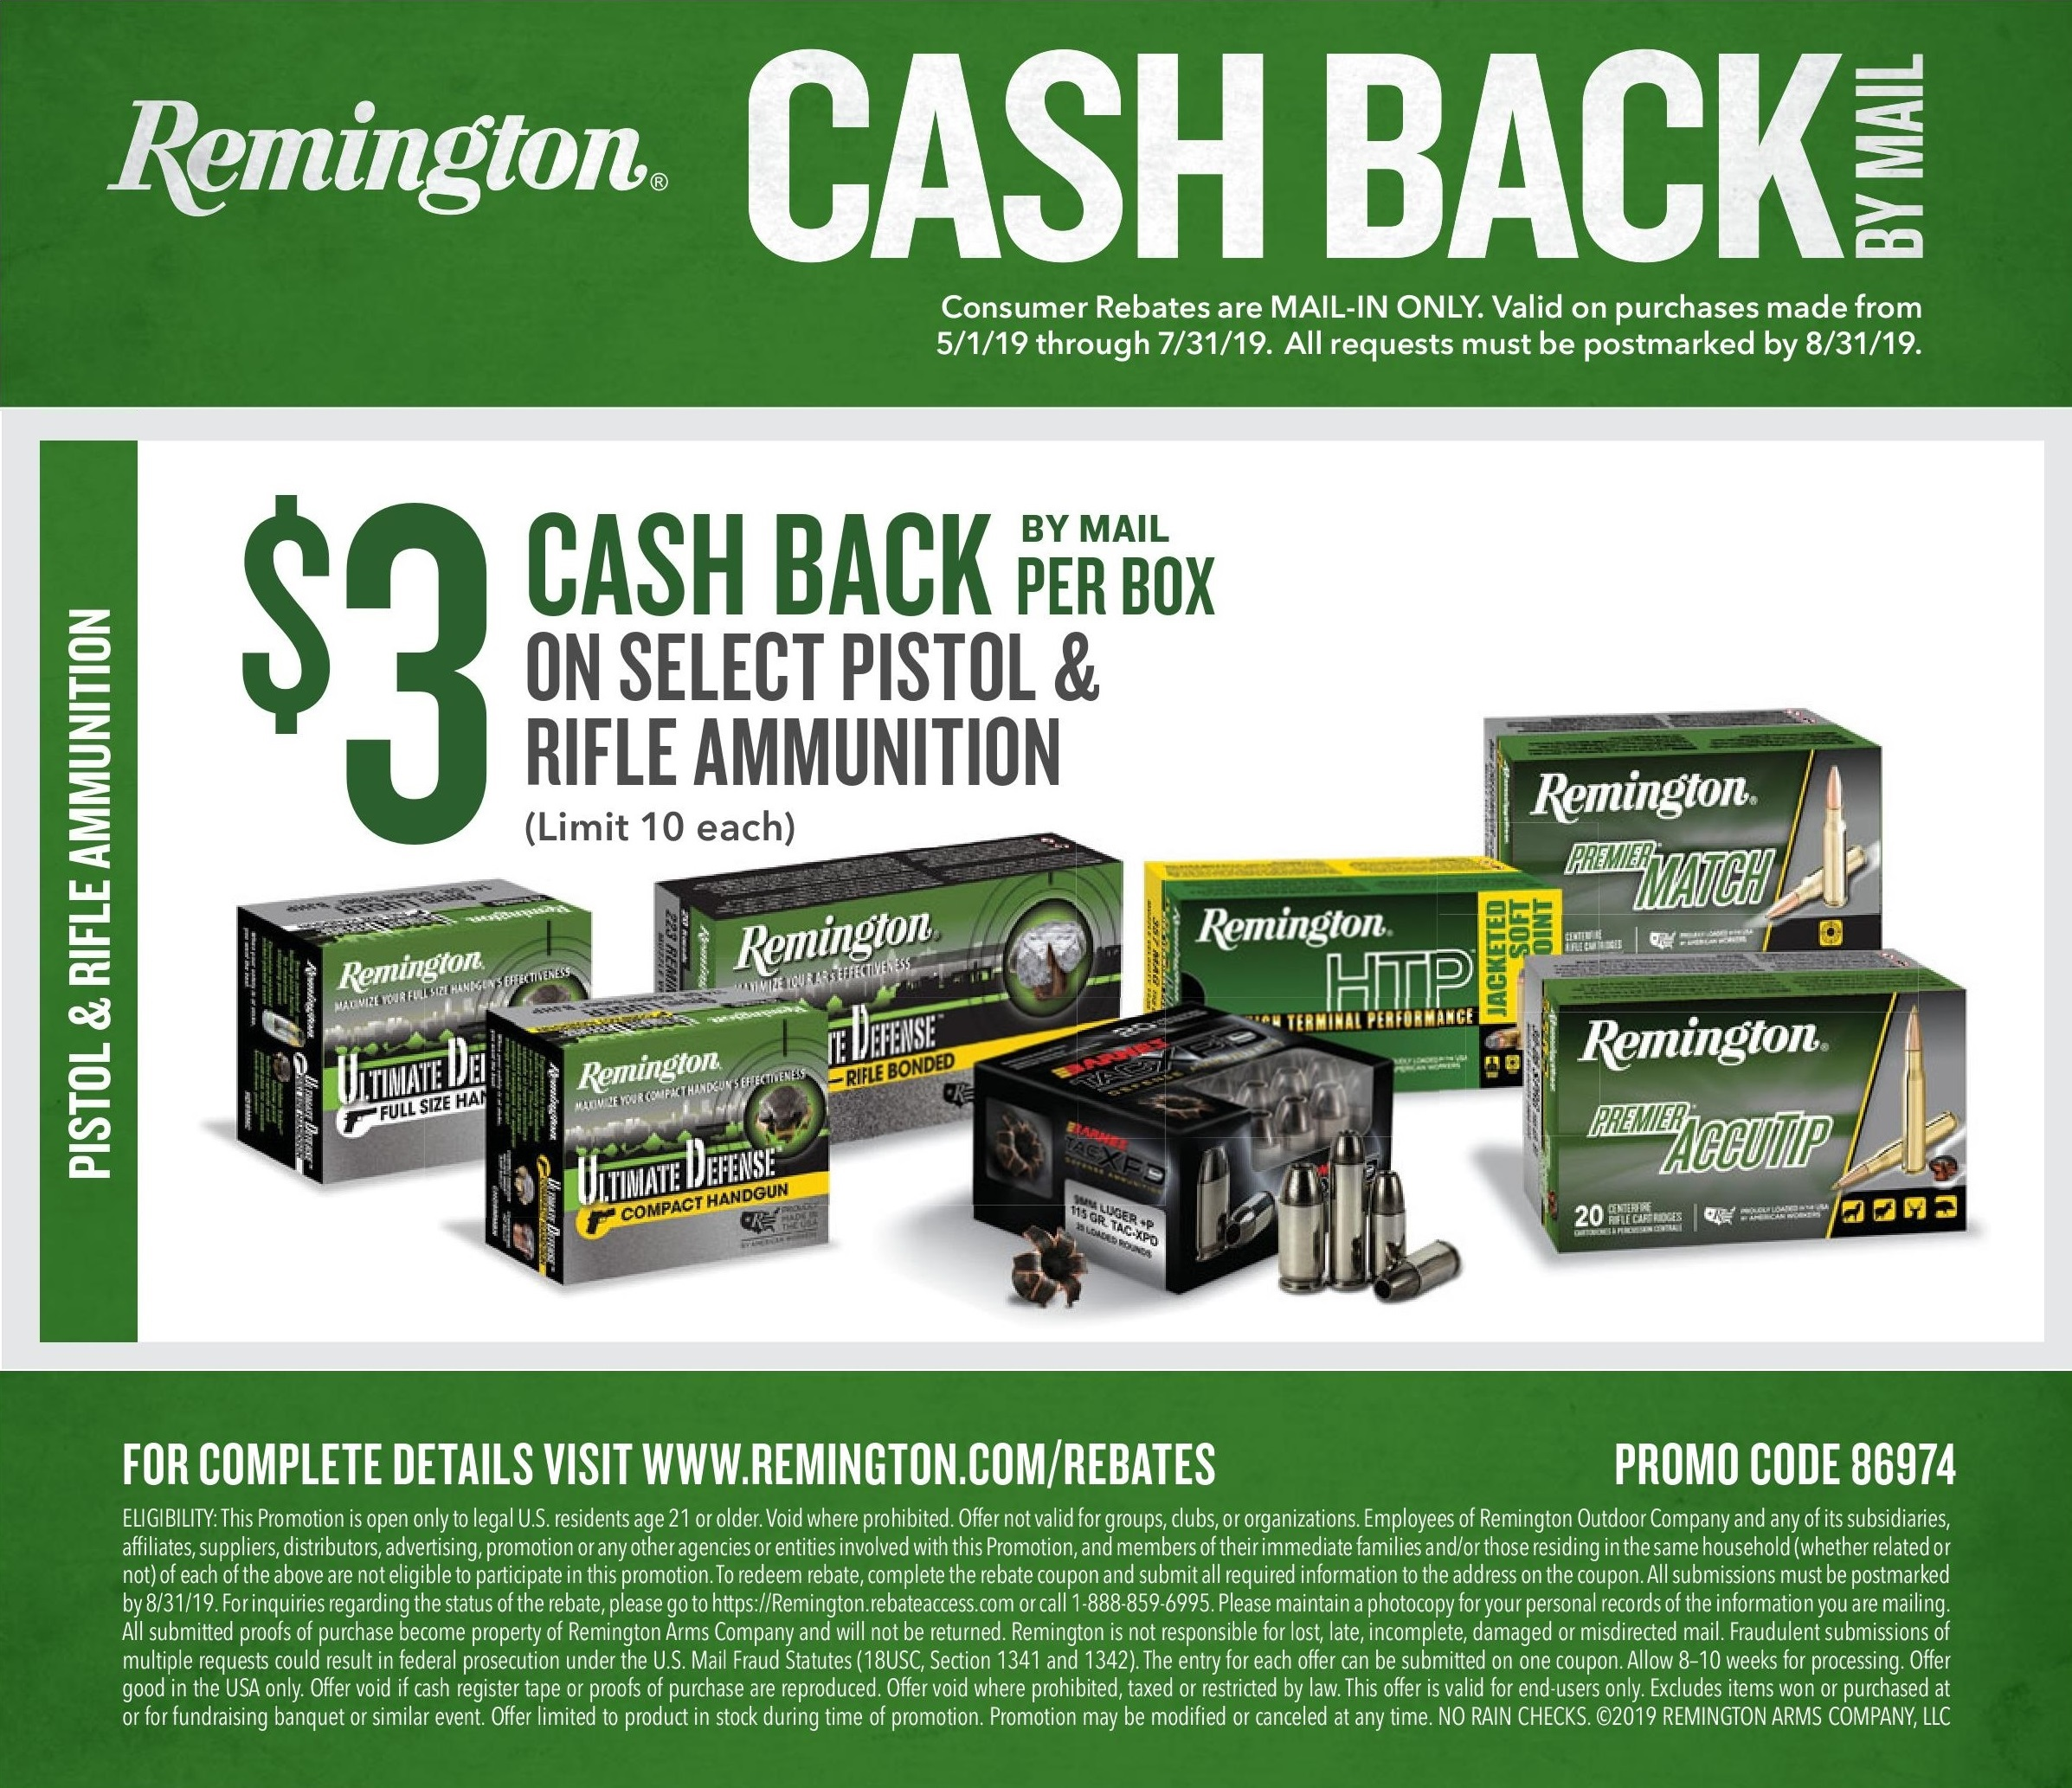 remington-banner2.jpg